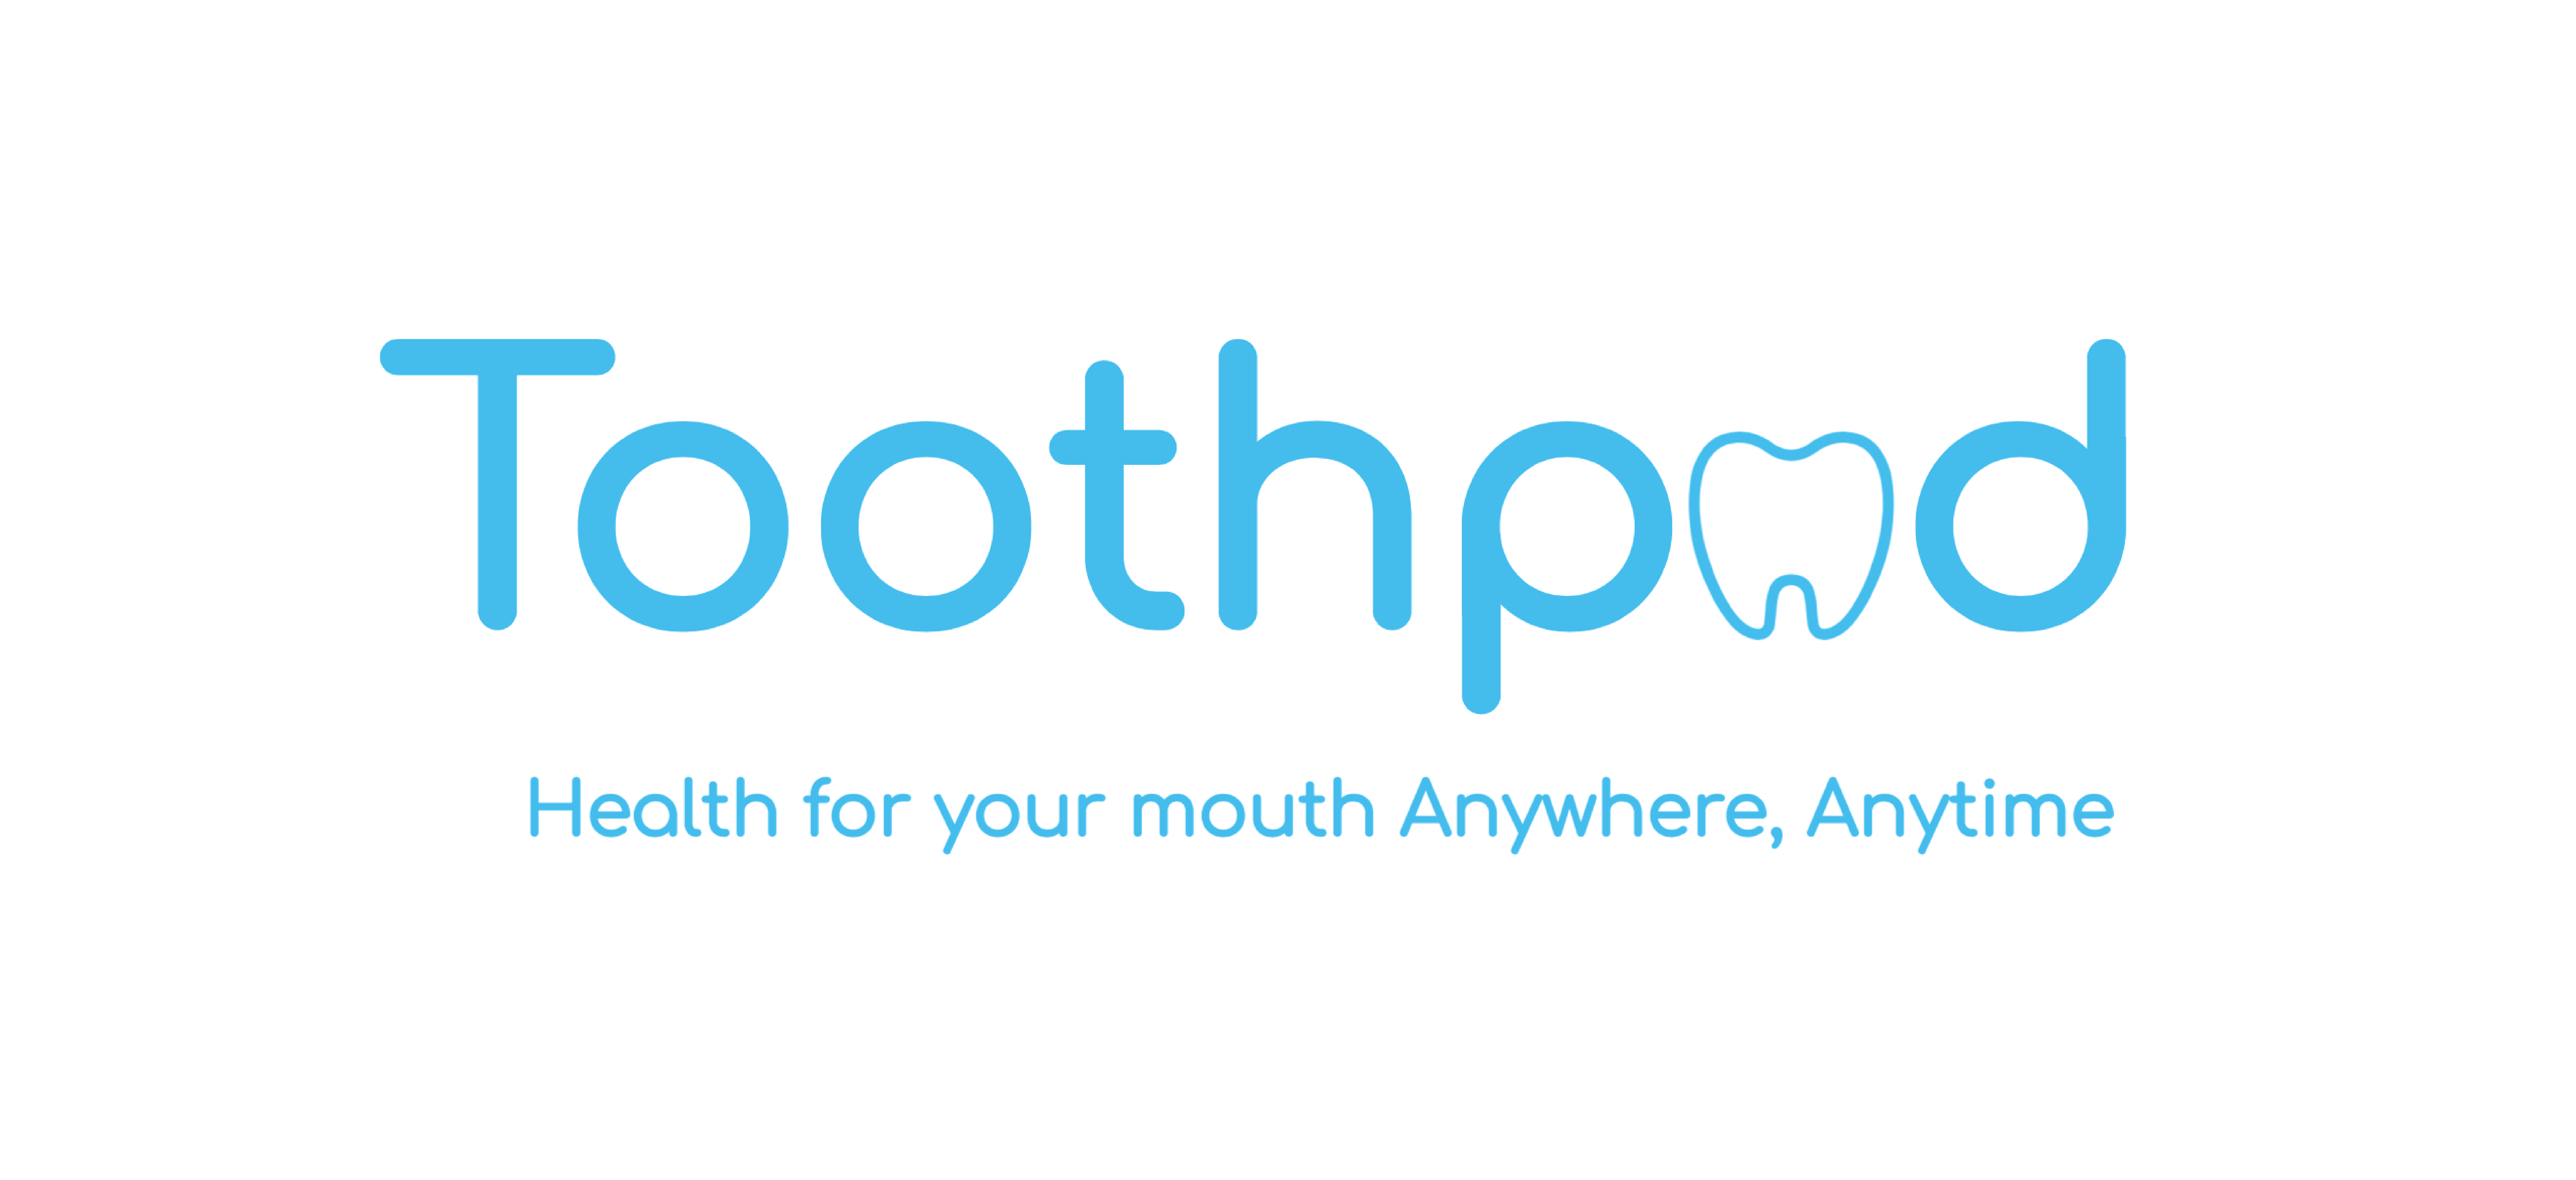 Toothpod